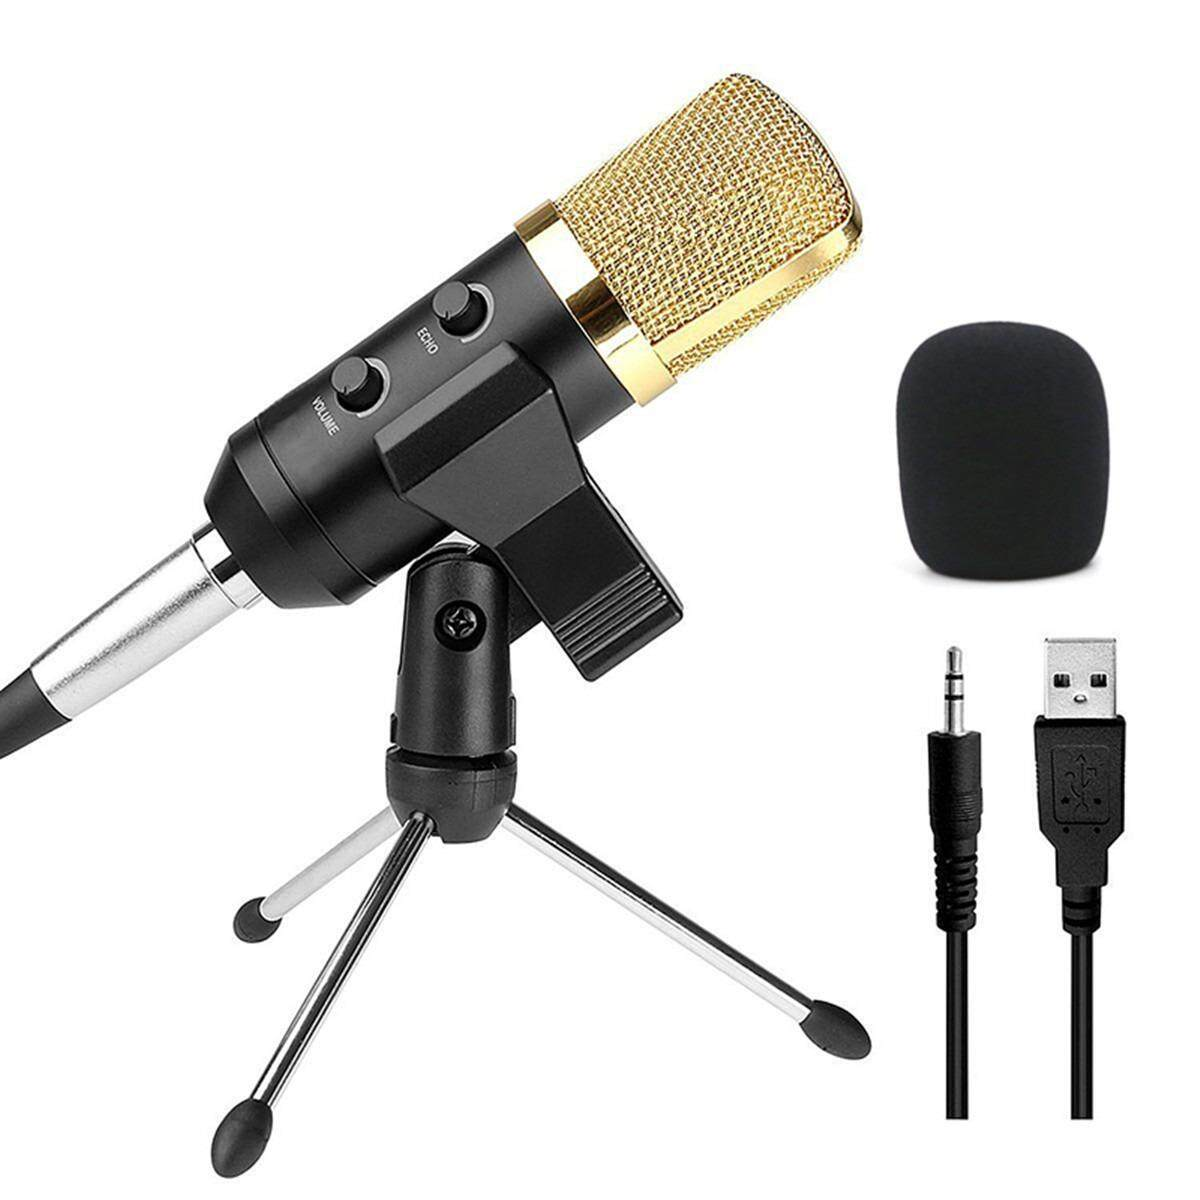 ราคา Audio Usb Condenser Sound Studio Recording Vocal Microphone With Stand Mount New Black Intl Thailand